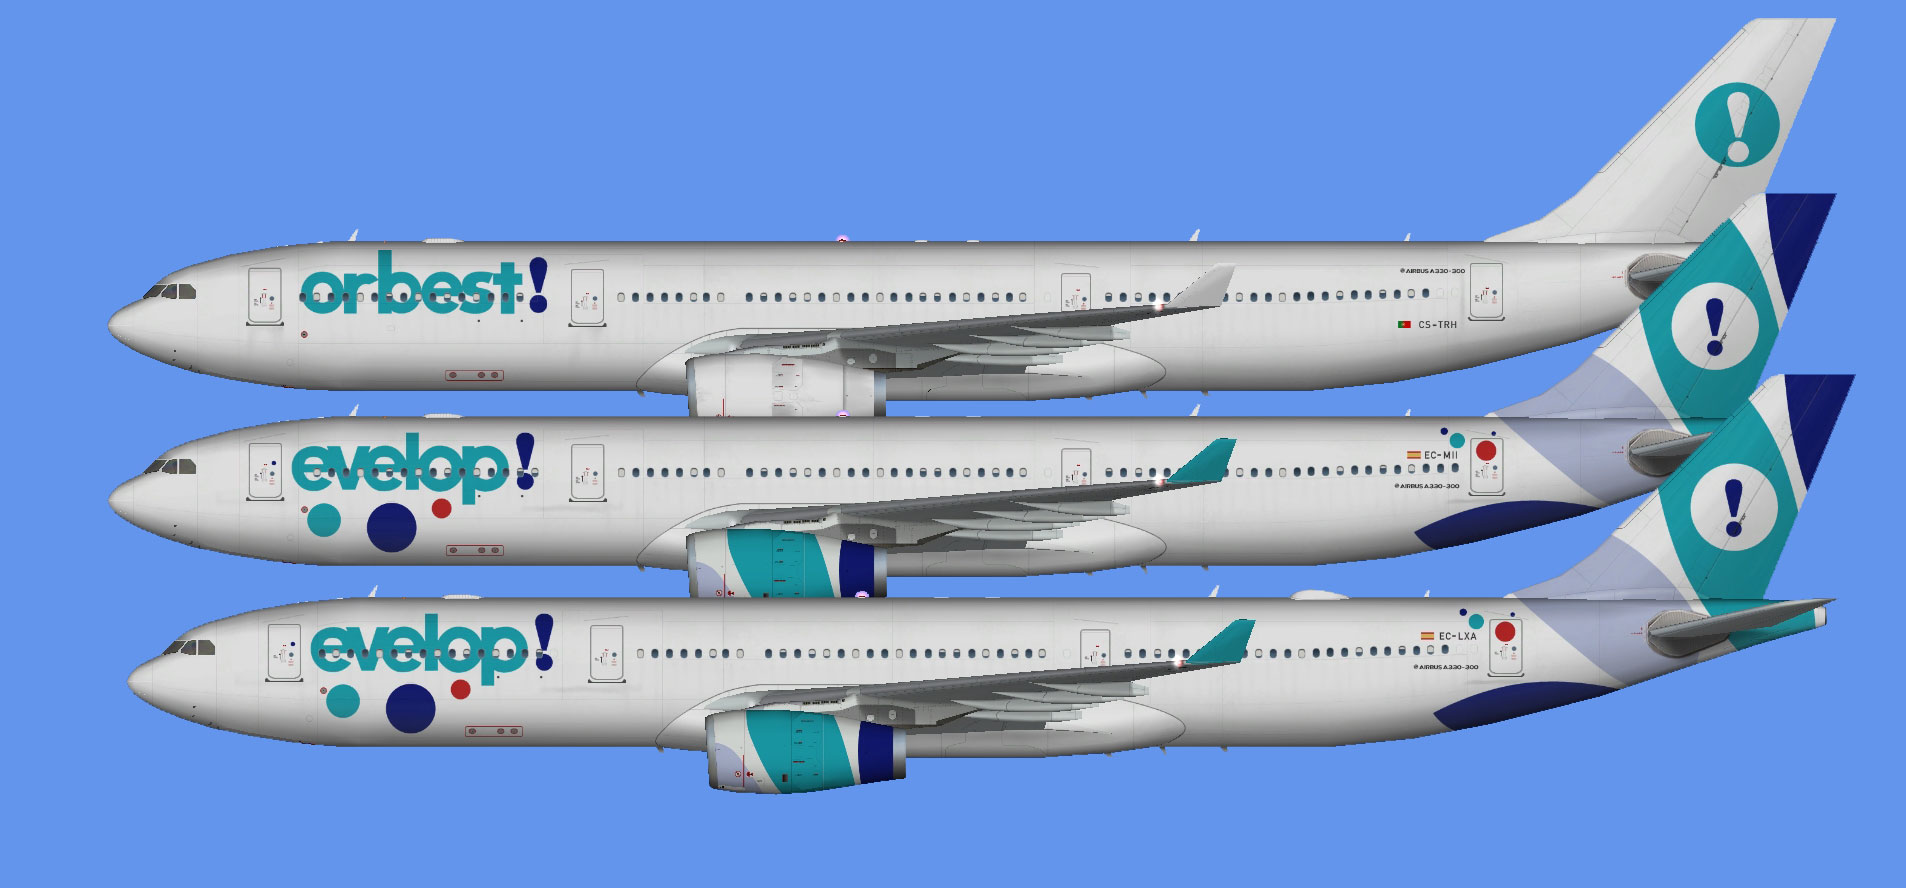 Evelop/Orbest A330-300 (FSP) - The Flying Carpet Hub